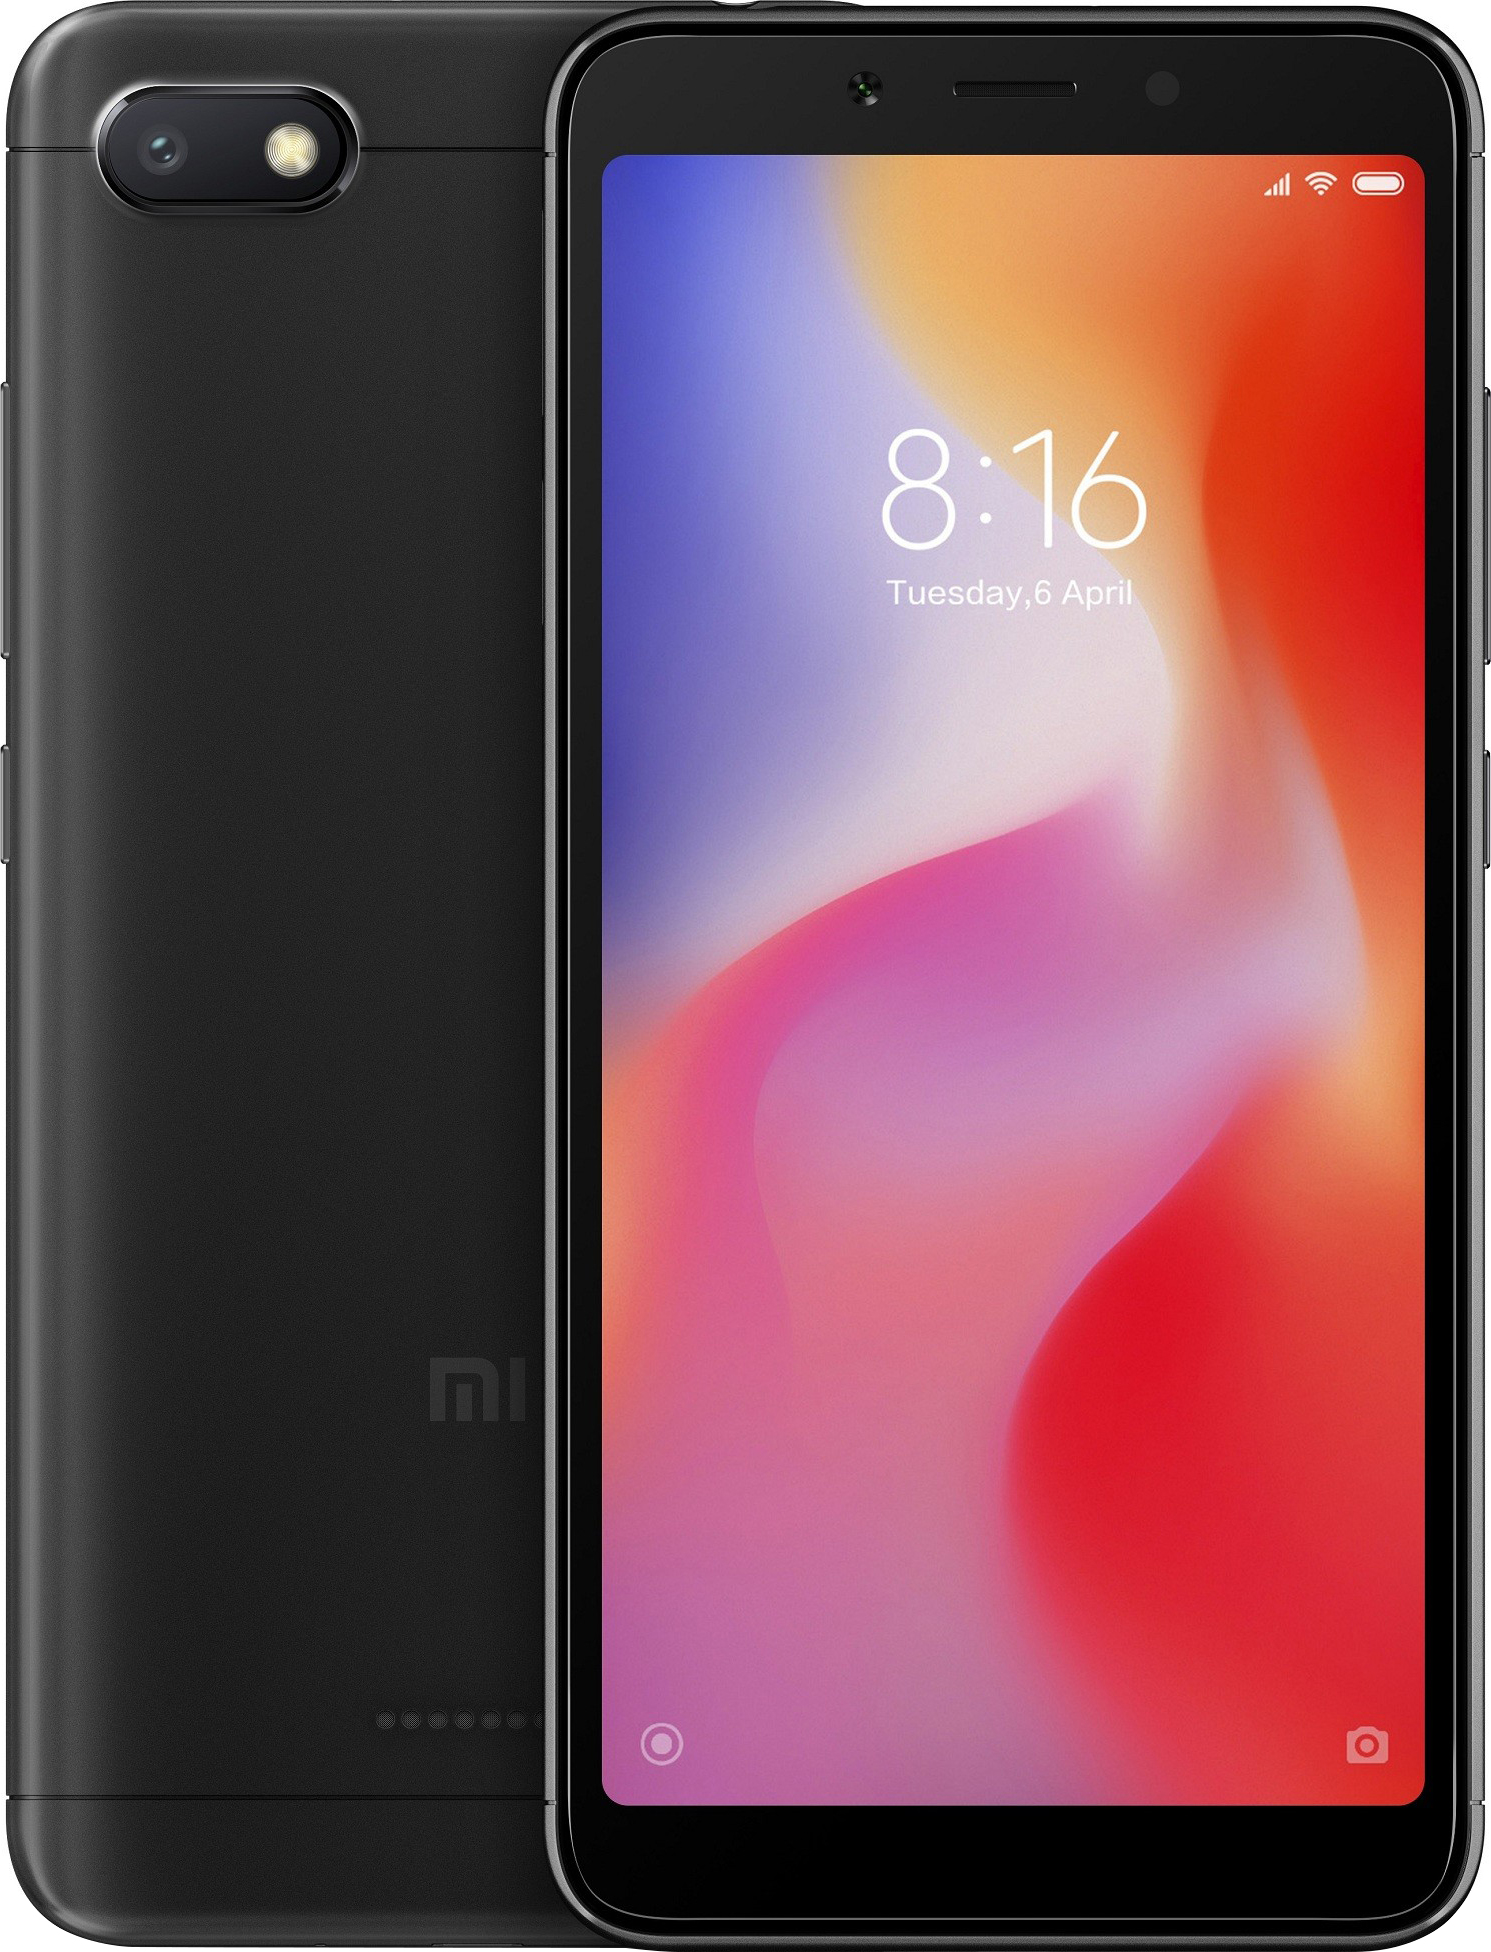 Xiaomi Redmi 6A Dual SIM - 16GB, 2GB RAM, 4G LTE, Black Global Versia